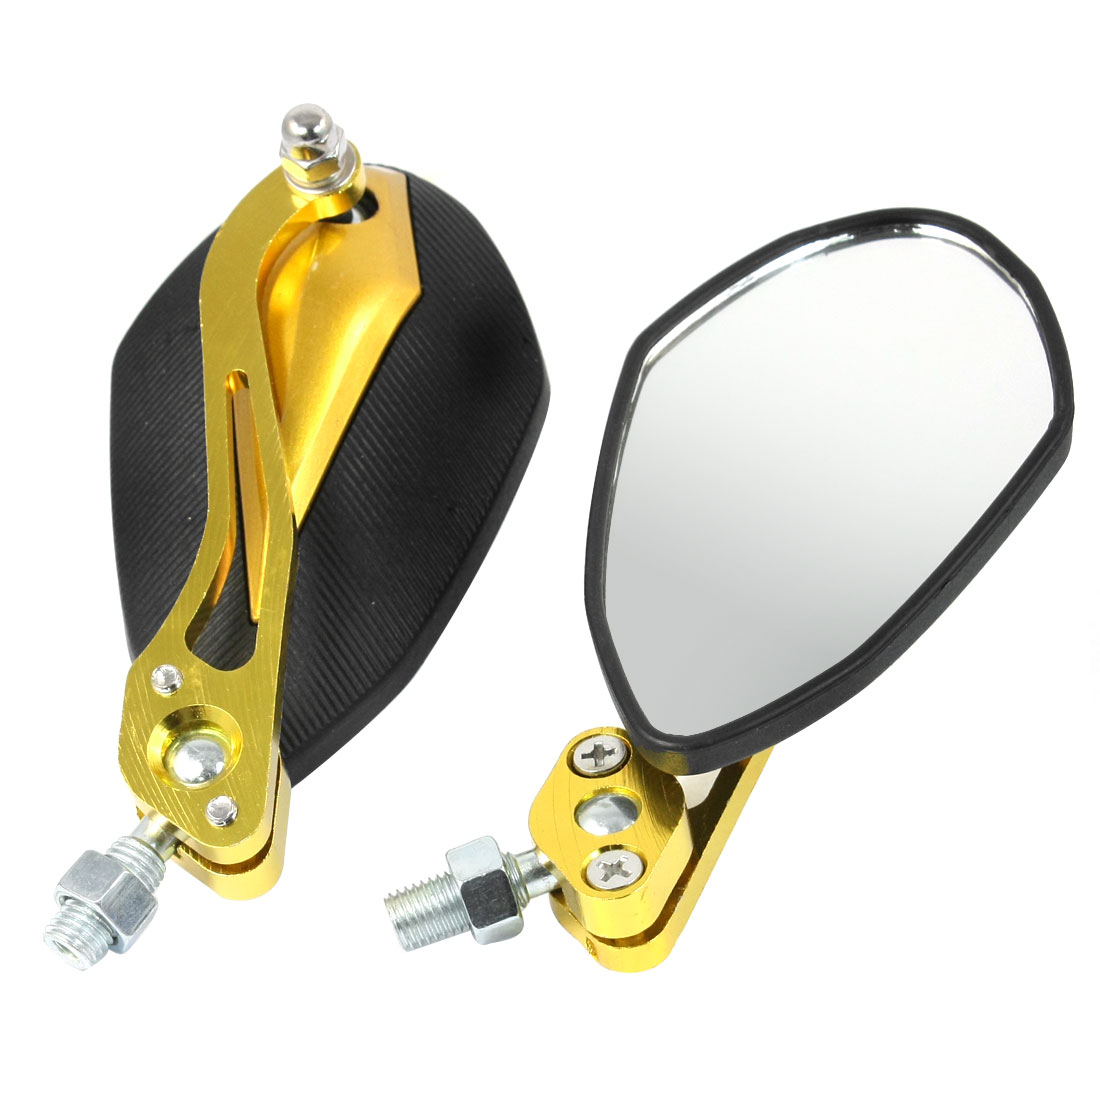 2 Pcs Black Gold Tone Motorbike 360 Degree Wide Angle Blind Spot Rearview Mirror